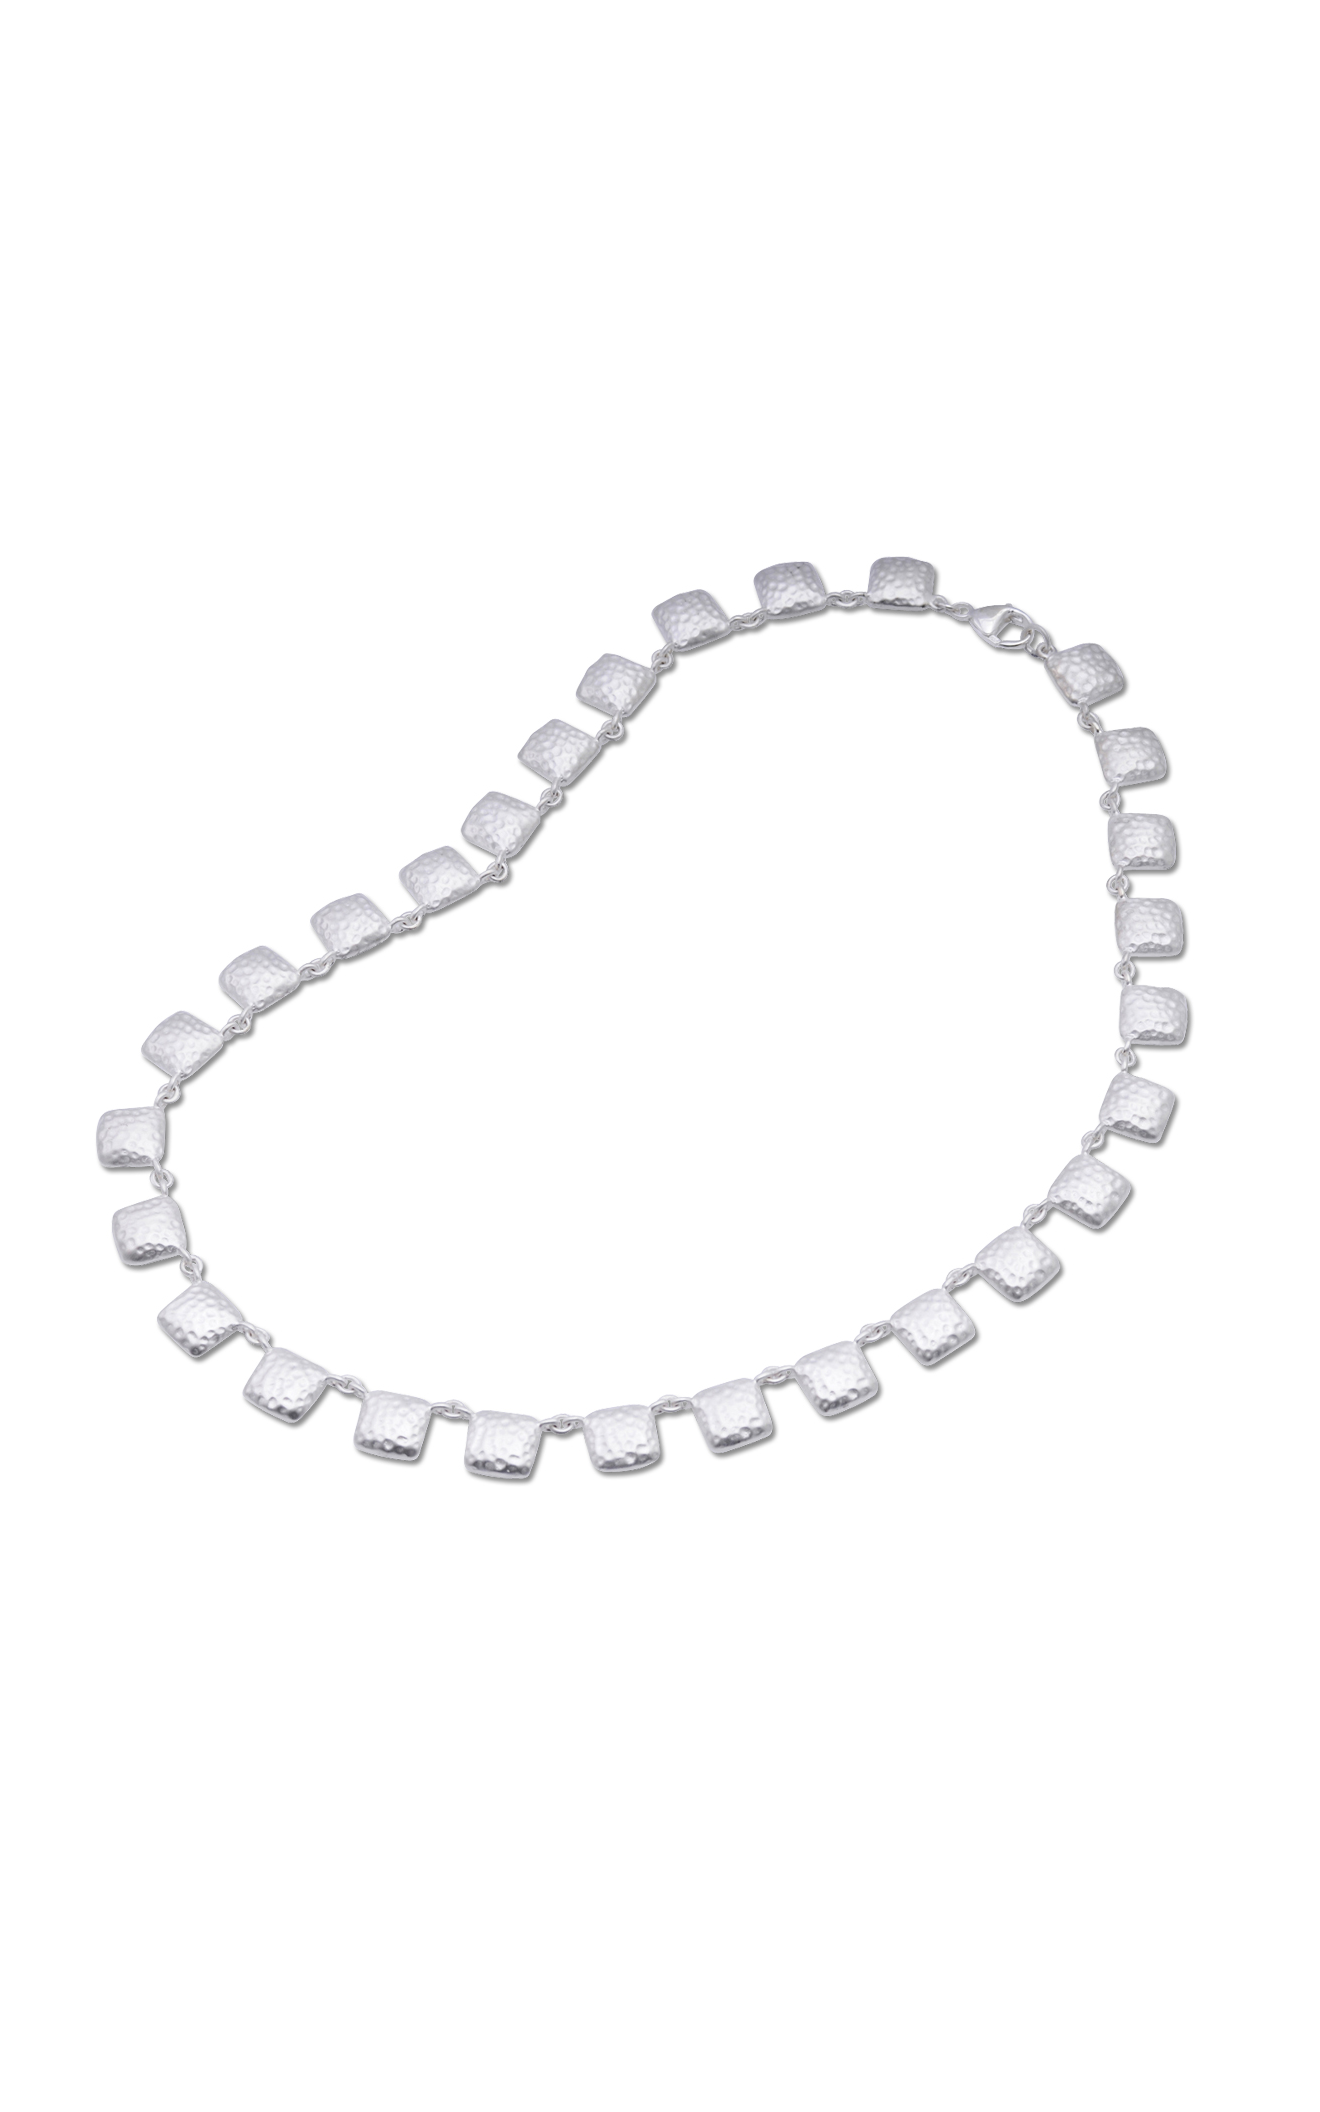 Zina Ripples Necklace A1626-17 product image